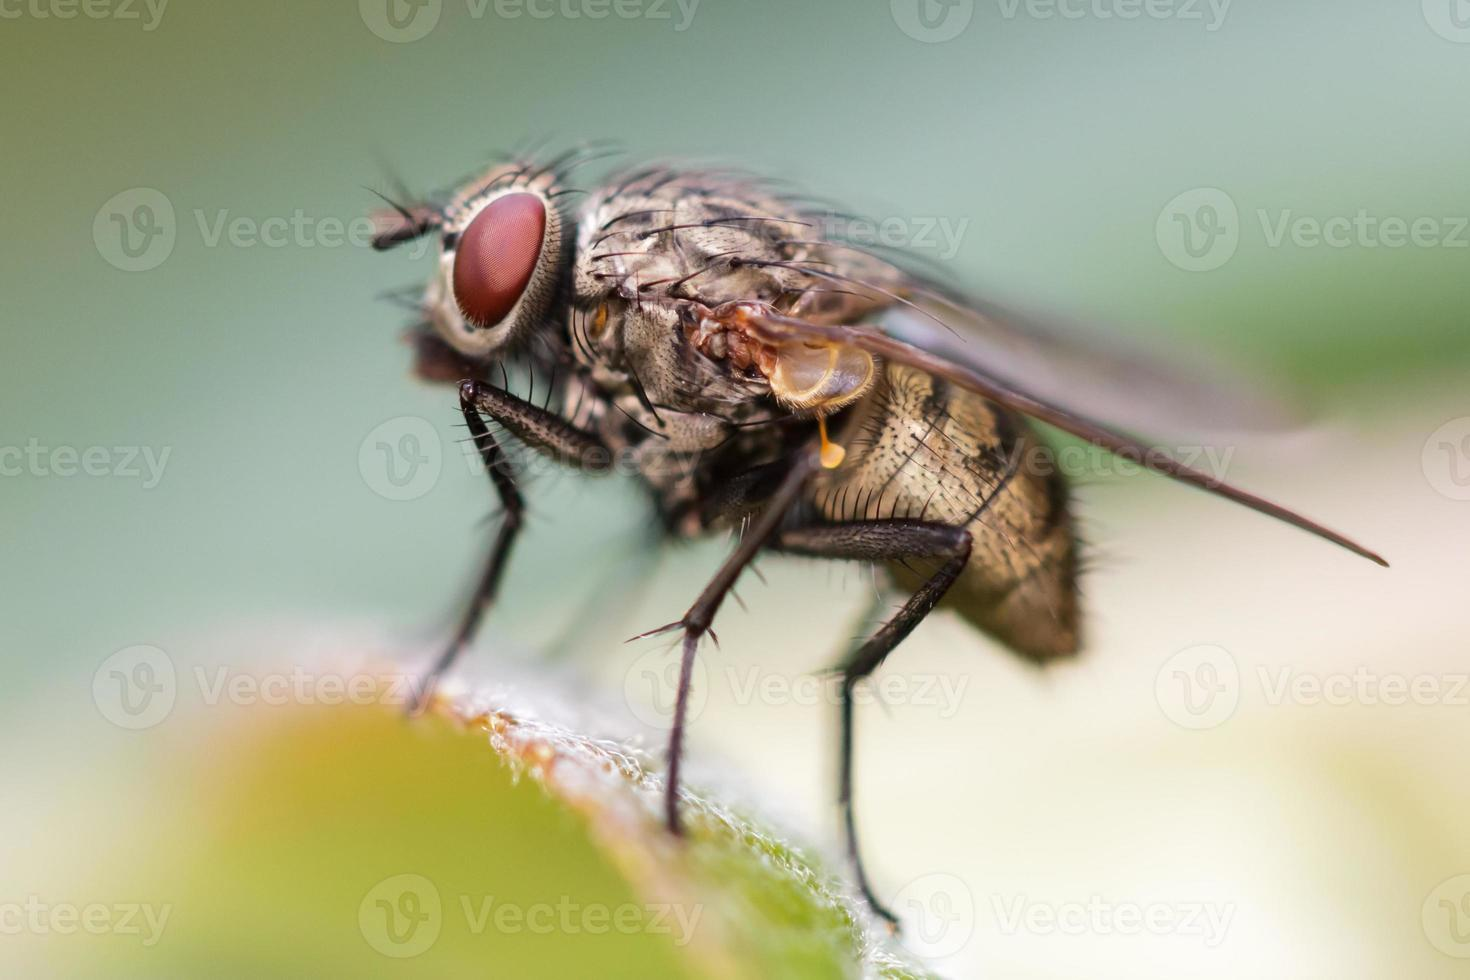 House Fly photo